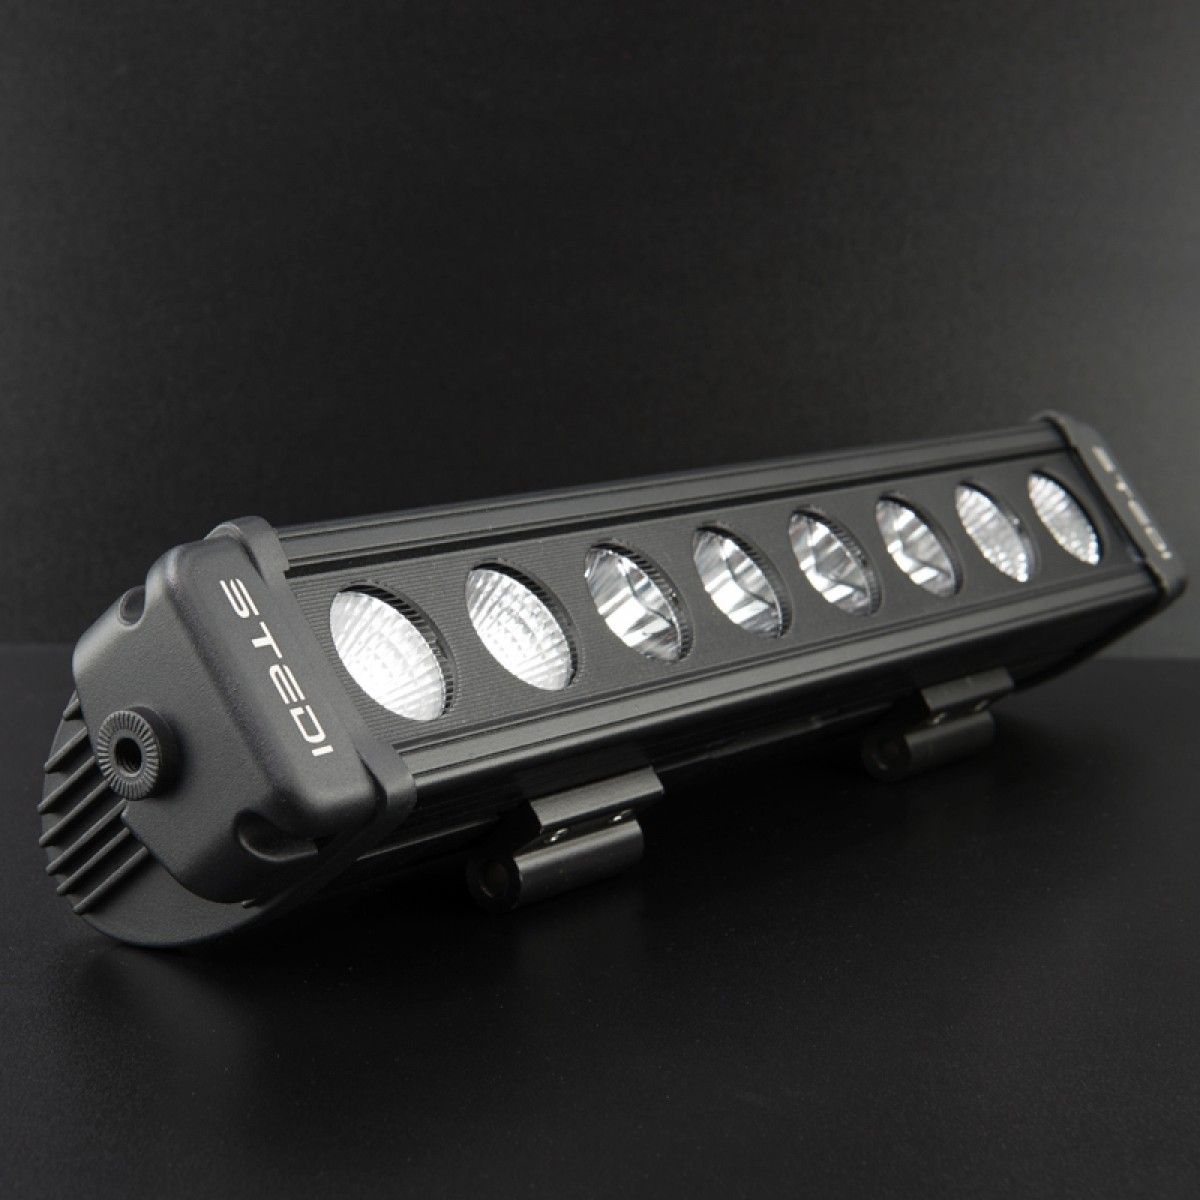 St3300 17 80w Cree Led Light Bar Single Row By Stedi Cree Led Cree Led Light Bar Bar Lighting